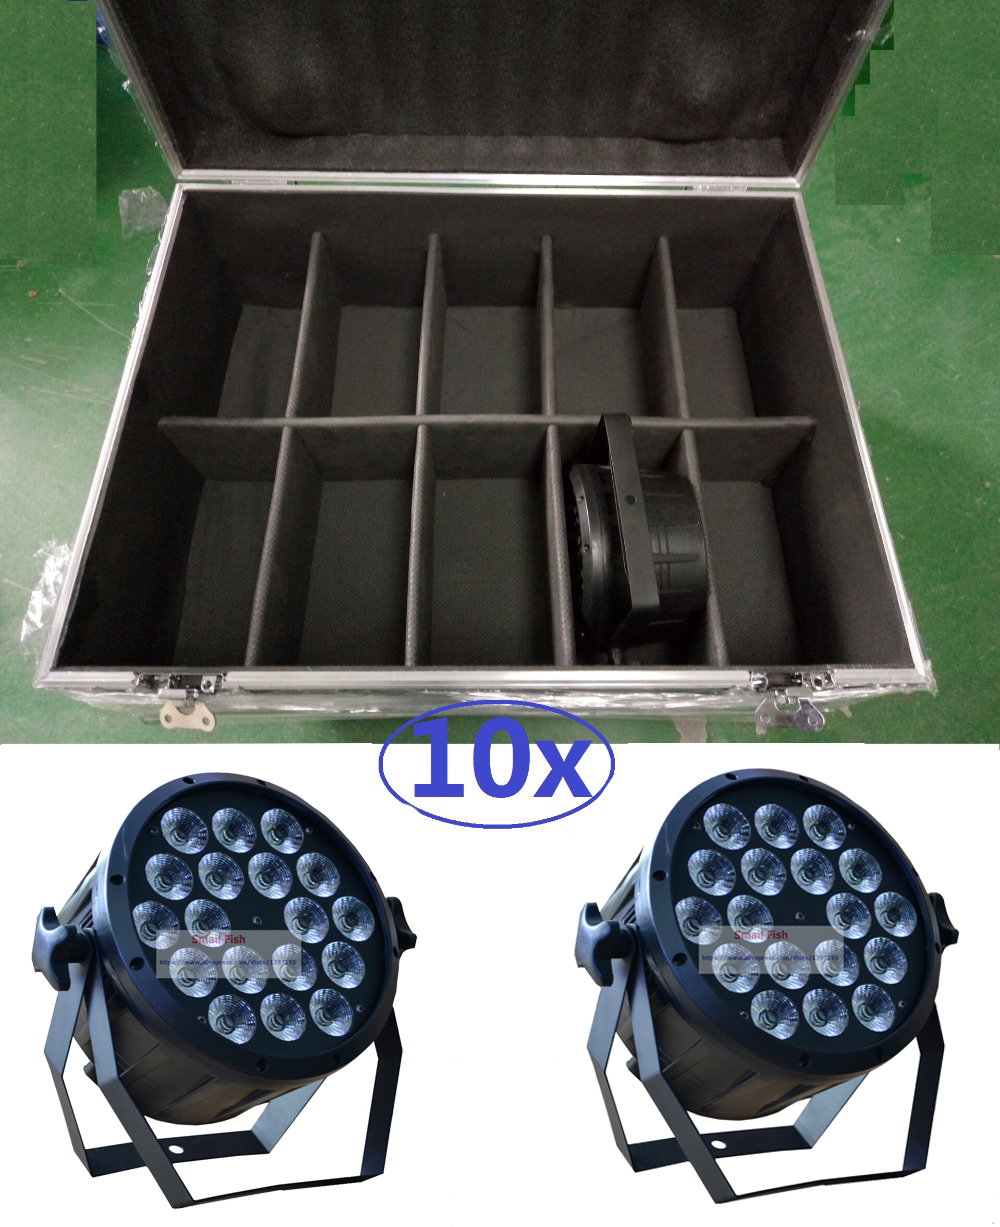 2016 High Power Led Par Light 18x12W RGBW 10pcs in Flightcase Flat Par Led Can Light DMX DJ Disco Beam Wash Laser Stage Lighting 4pcs lot the brightest 4 8 dmx channels led flat par 18x12w rgbw 4in1 led par can light with power in power out